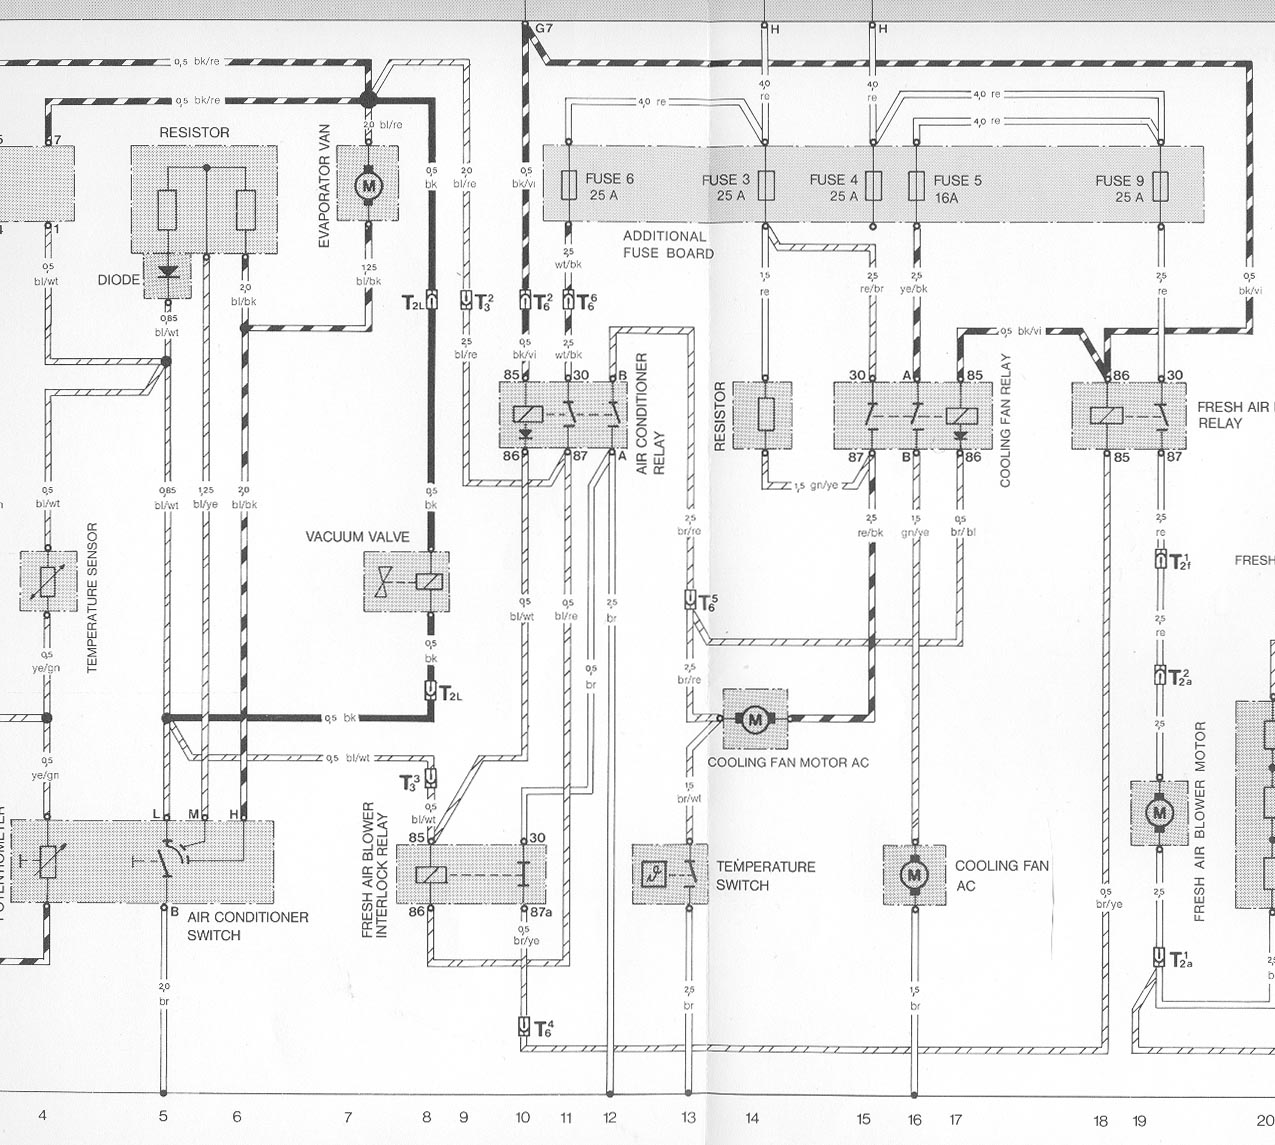 1984 Porsche 944 Engine Wiring Diagram Quick Start Guide Of 1987 911 Electrical Diagrams Schematic Rh 77 Pelzmoden Mueller De